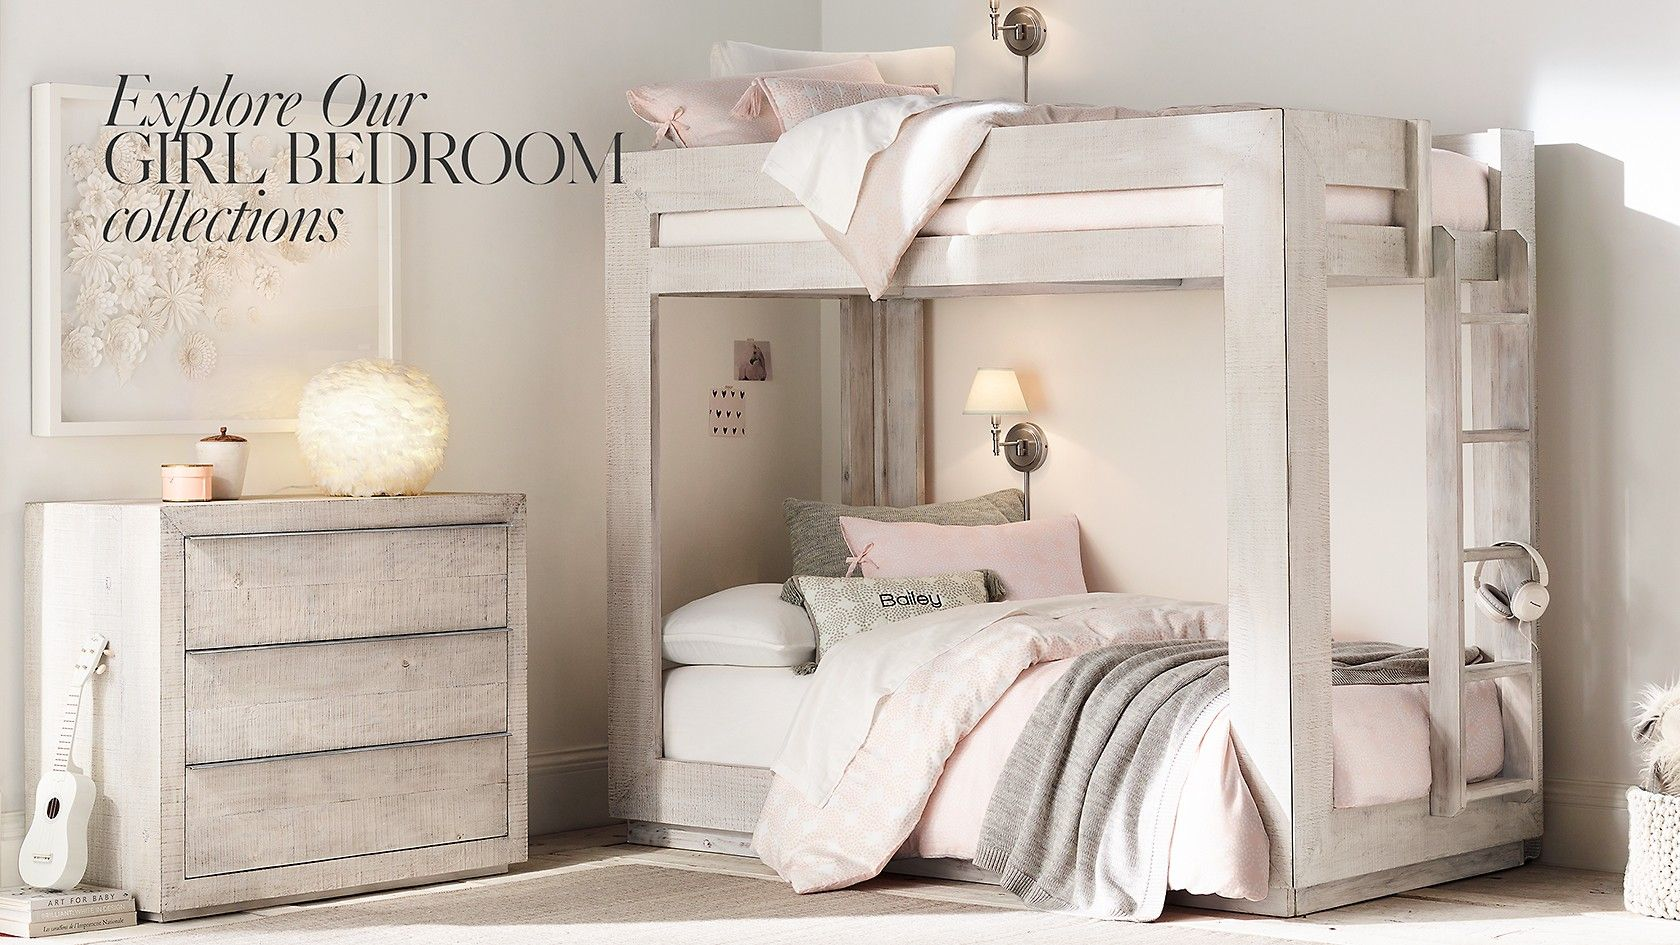 Luxe Babykamer Ideen : Rh baby and child. explore our furniture collections. home pinterest